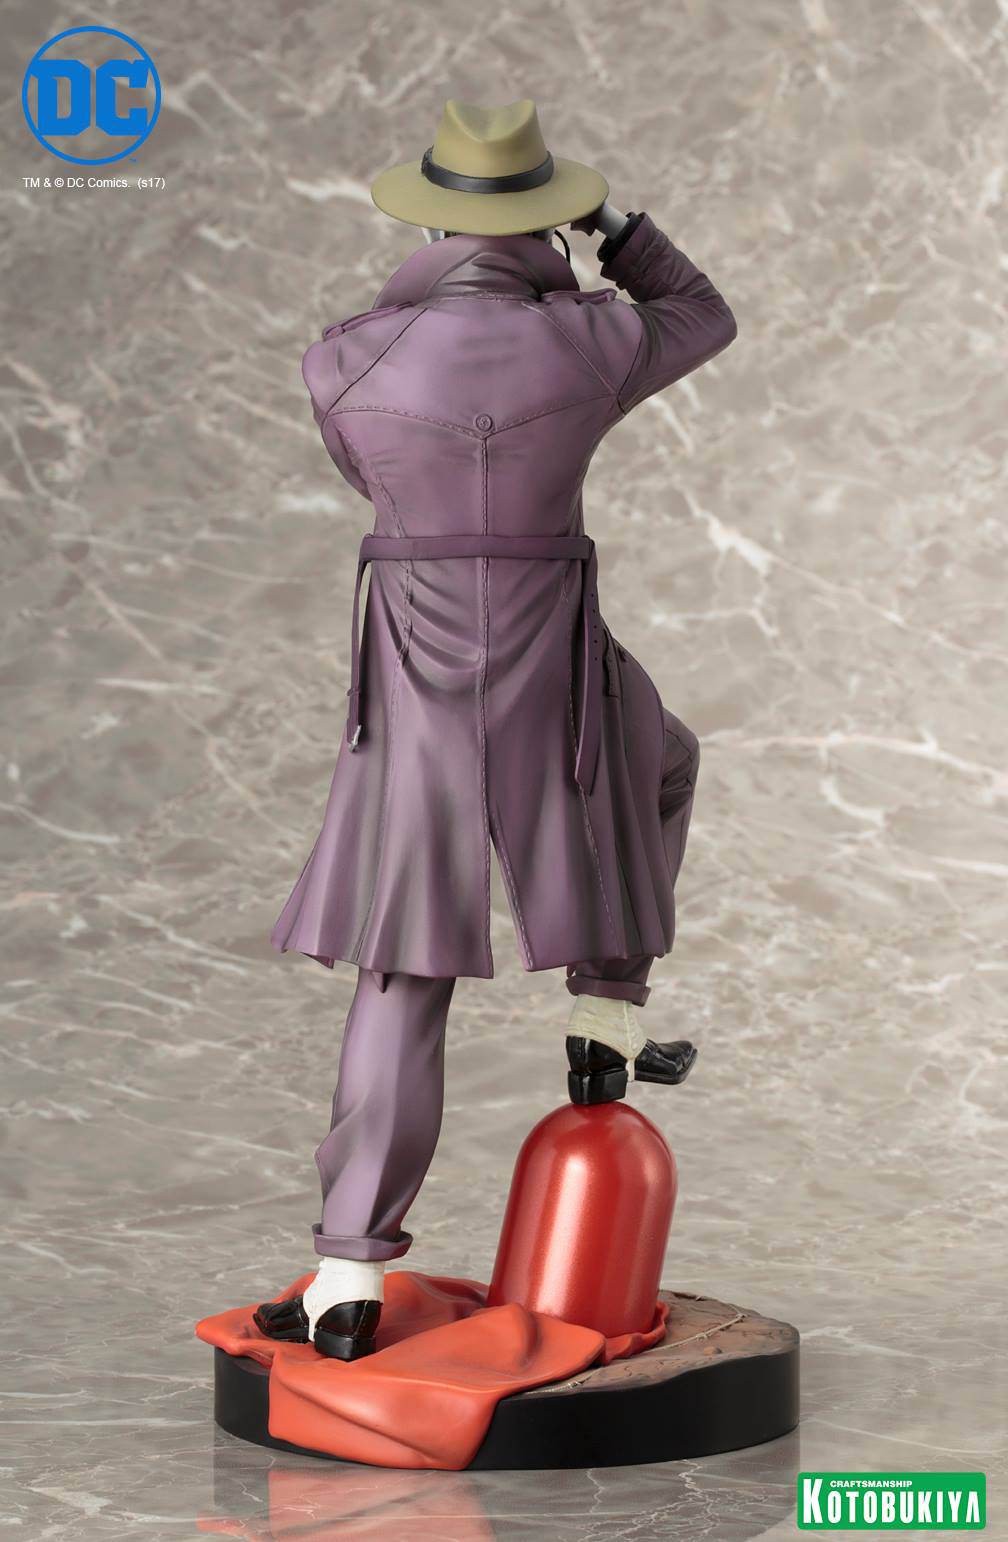 kotobukiya-joker-the-killing-joke-statue-6